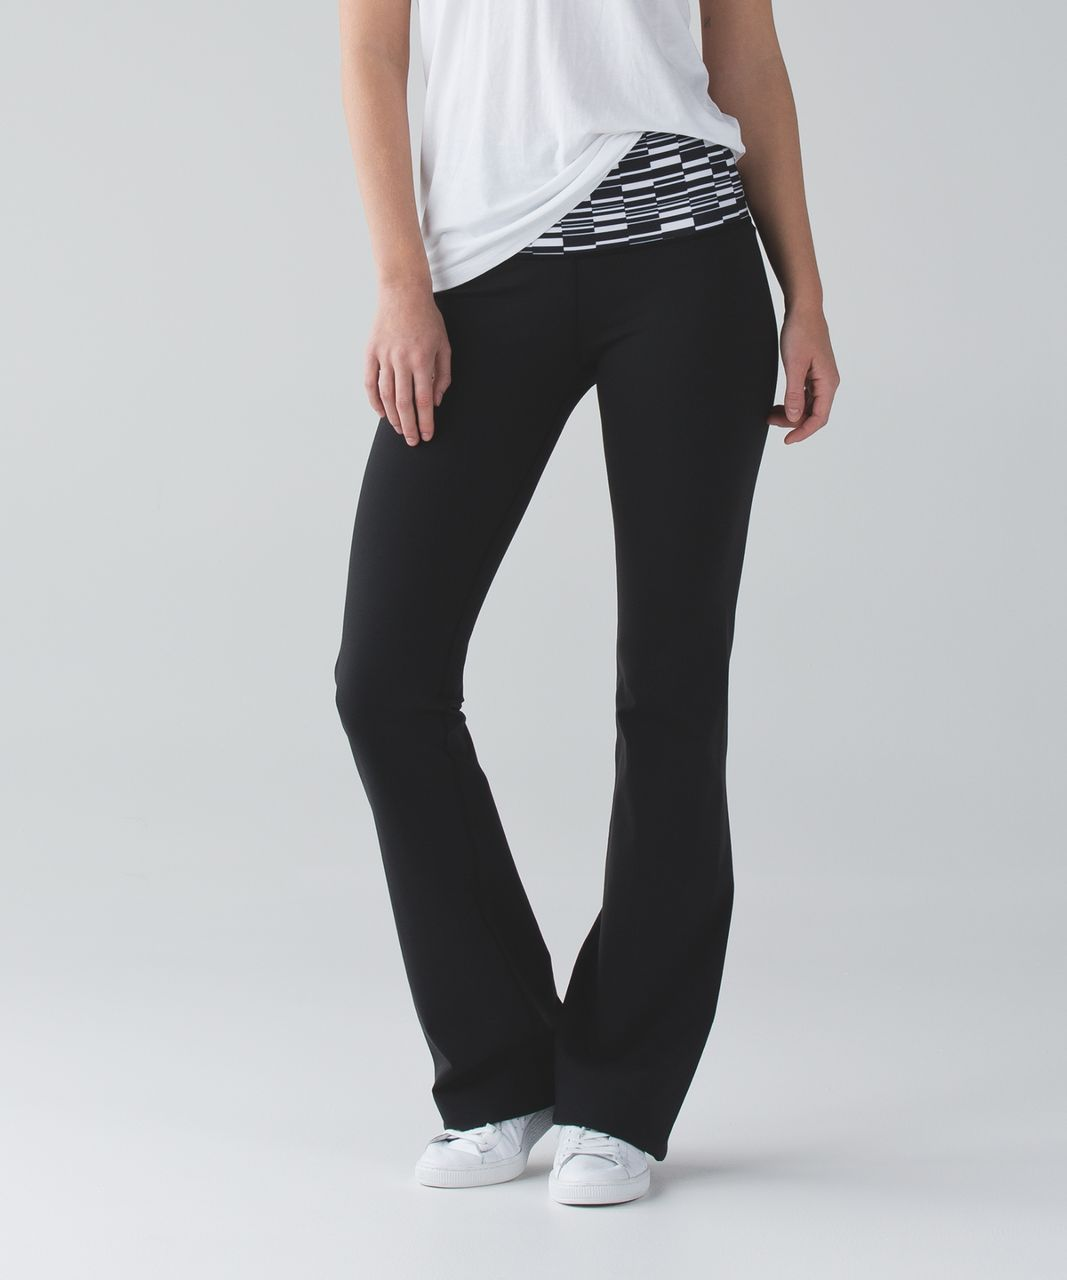 Lululemon Groove Pant III (Tall) *Full-On Luon - Black / Ying Yang Stripe White Black